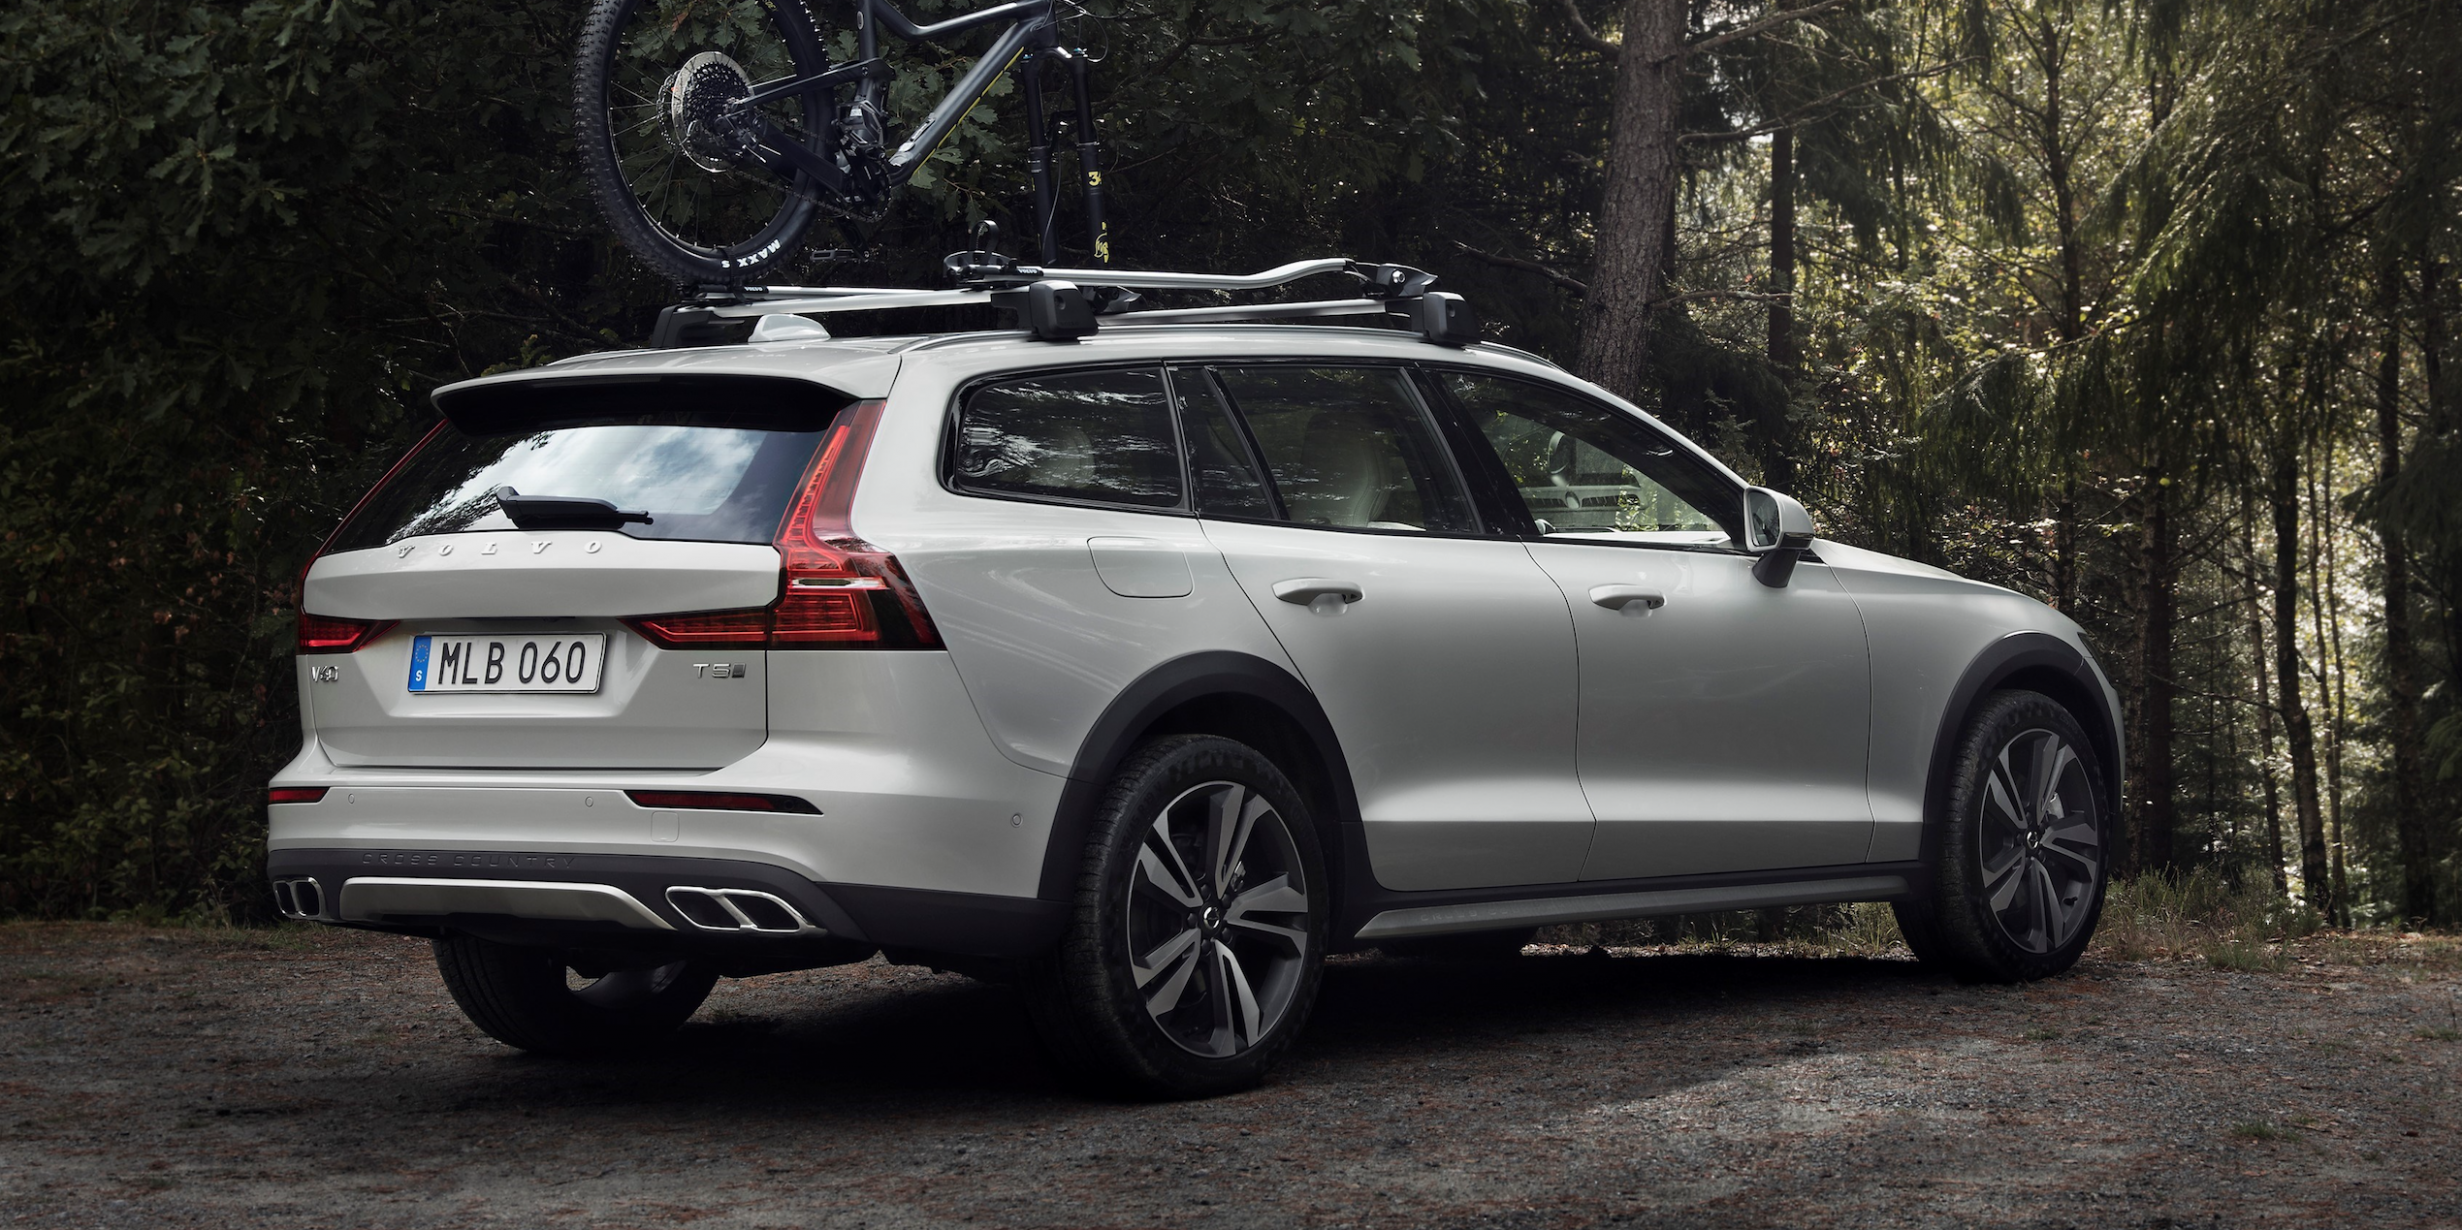 7 Volvo V7 Cross Country Specs, Pictures, HP, and Pricing - 2020 volvo v60 ground clearance